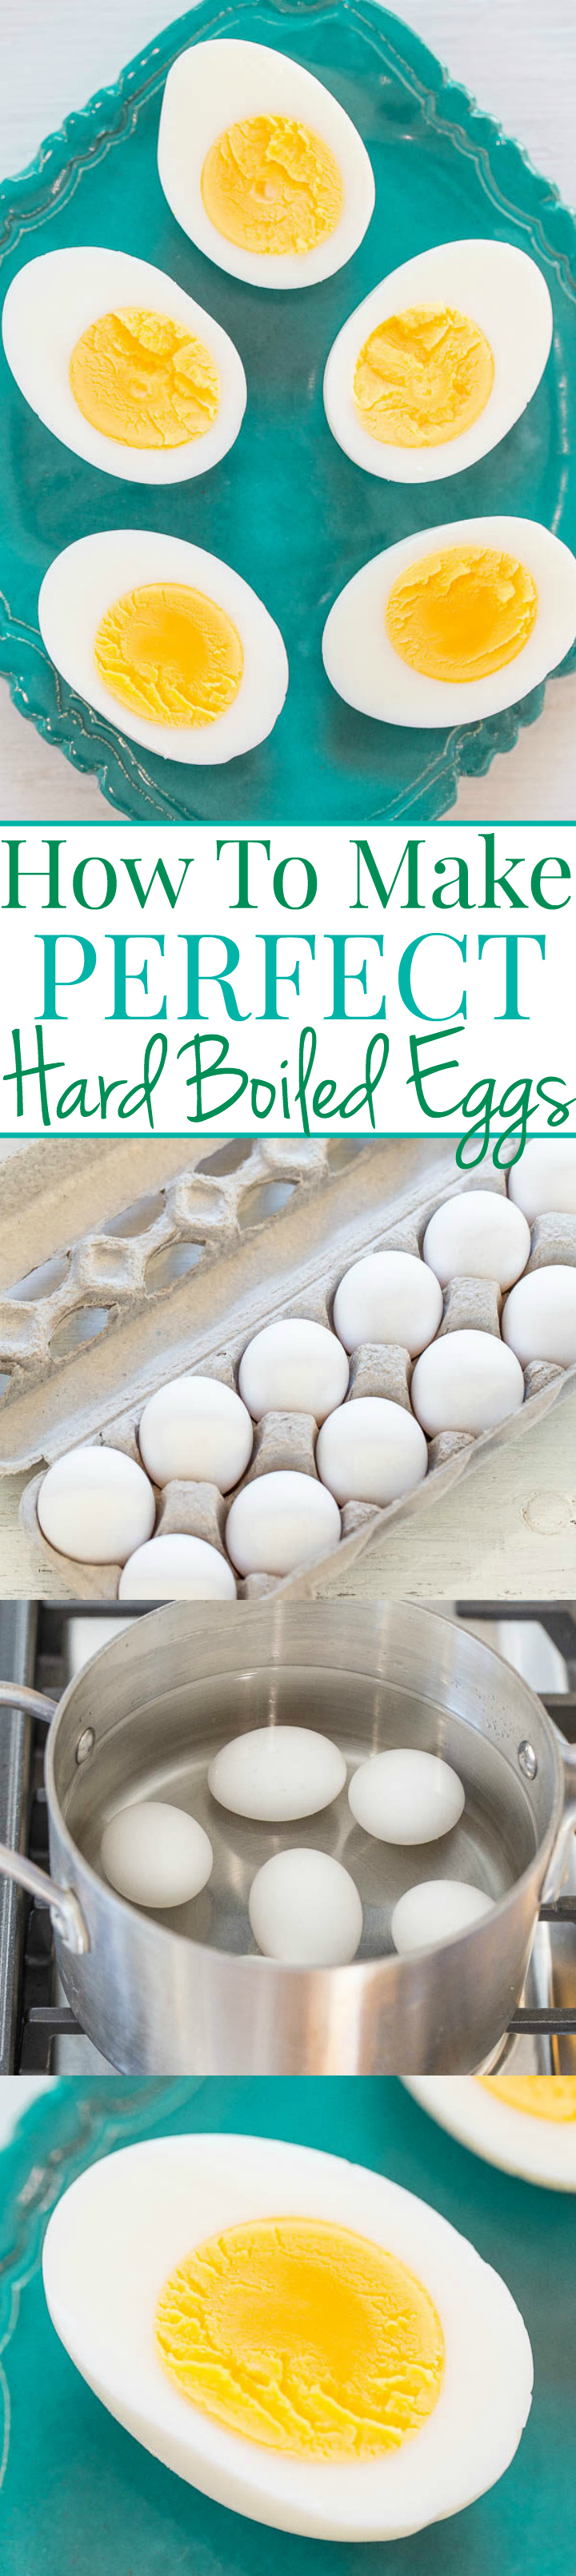 Four picture collage of how to make hard boiled eggs with graphic